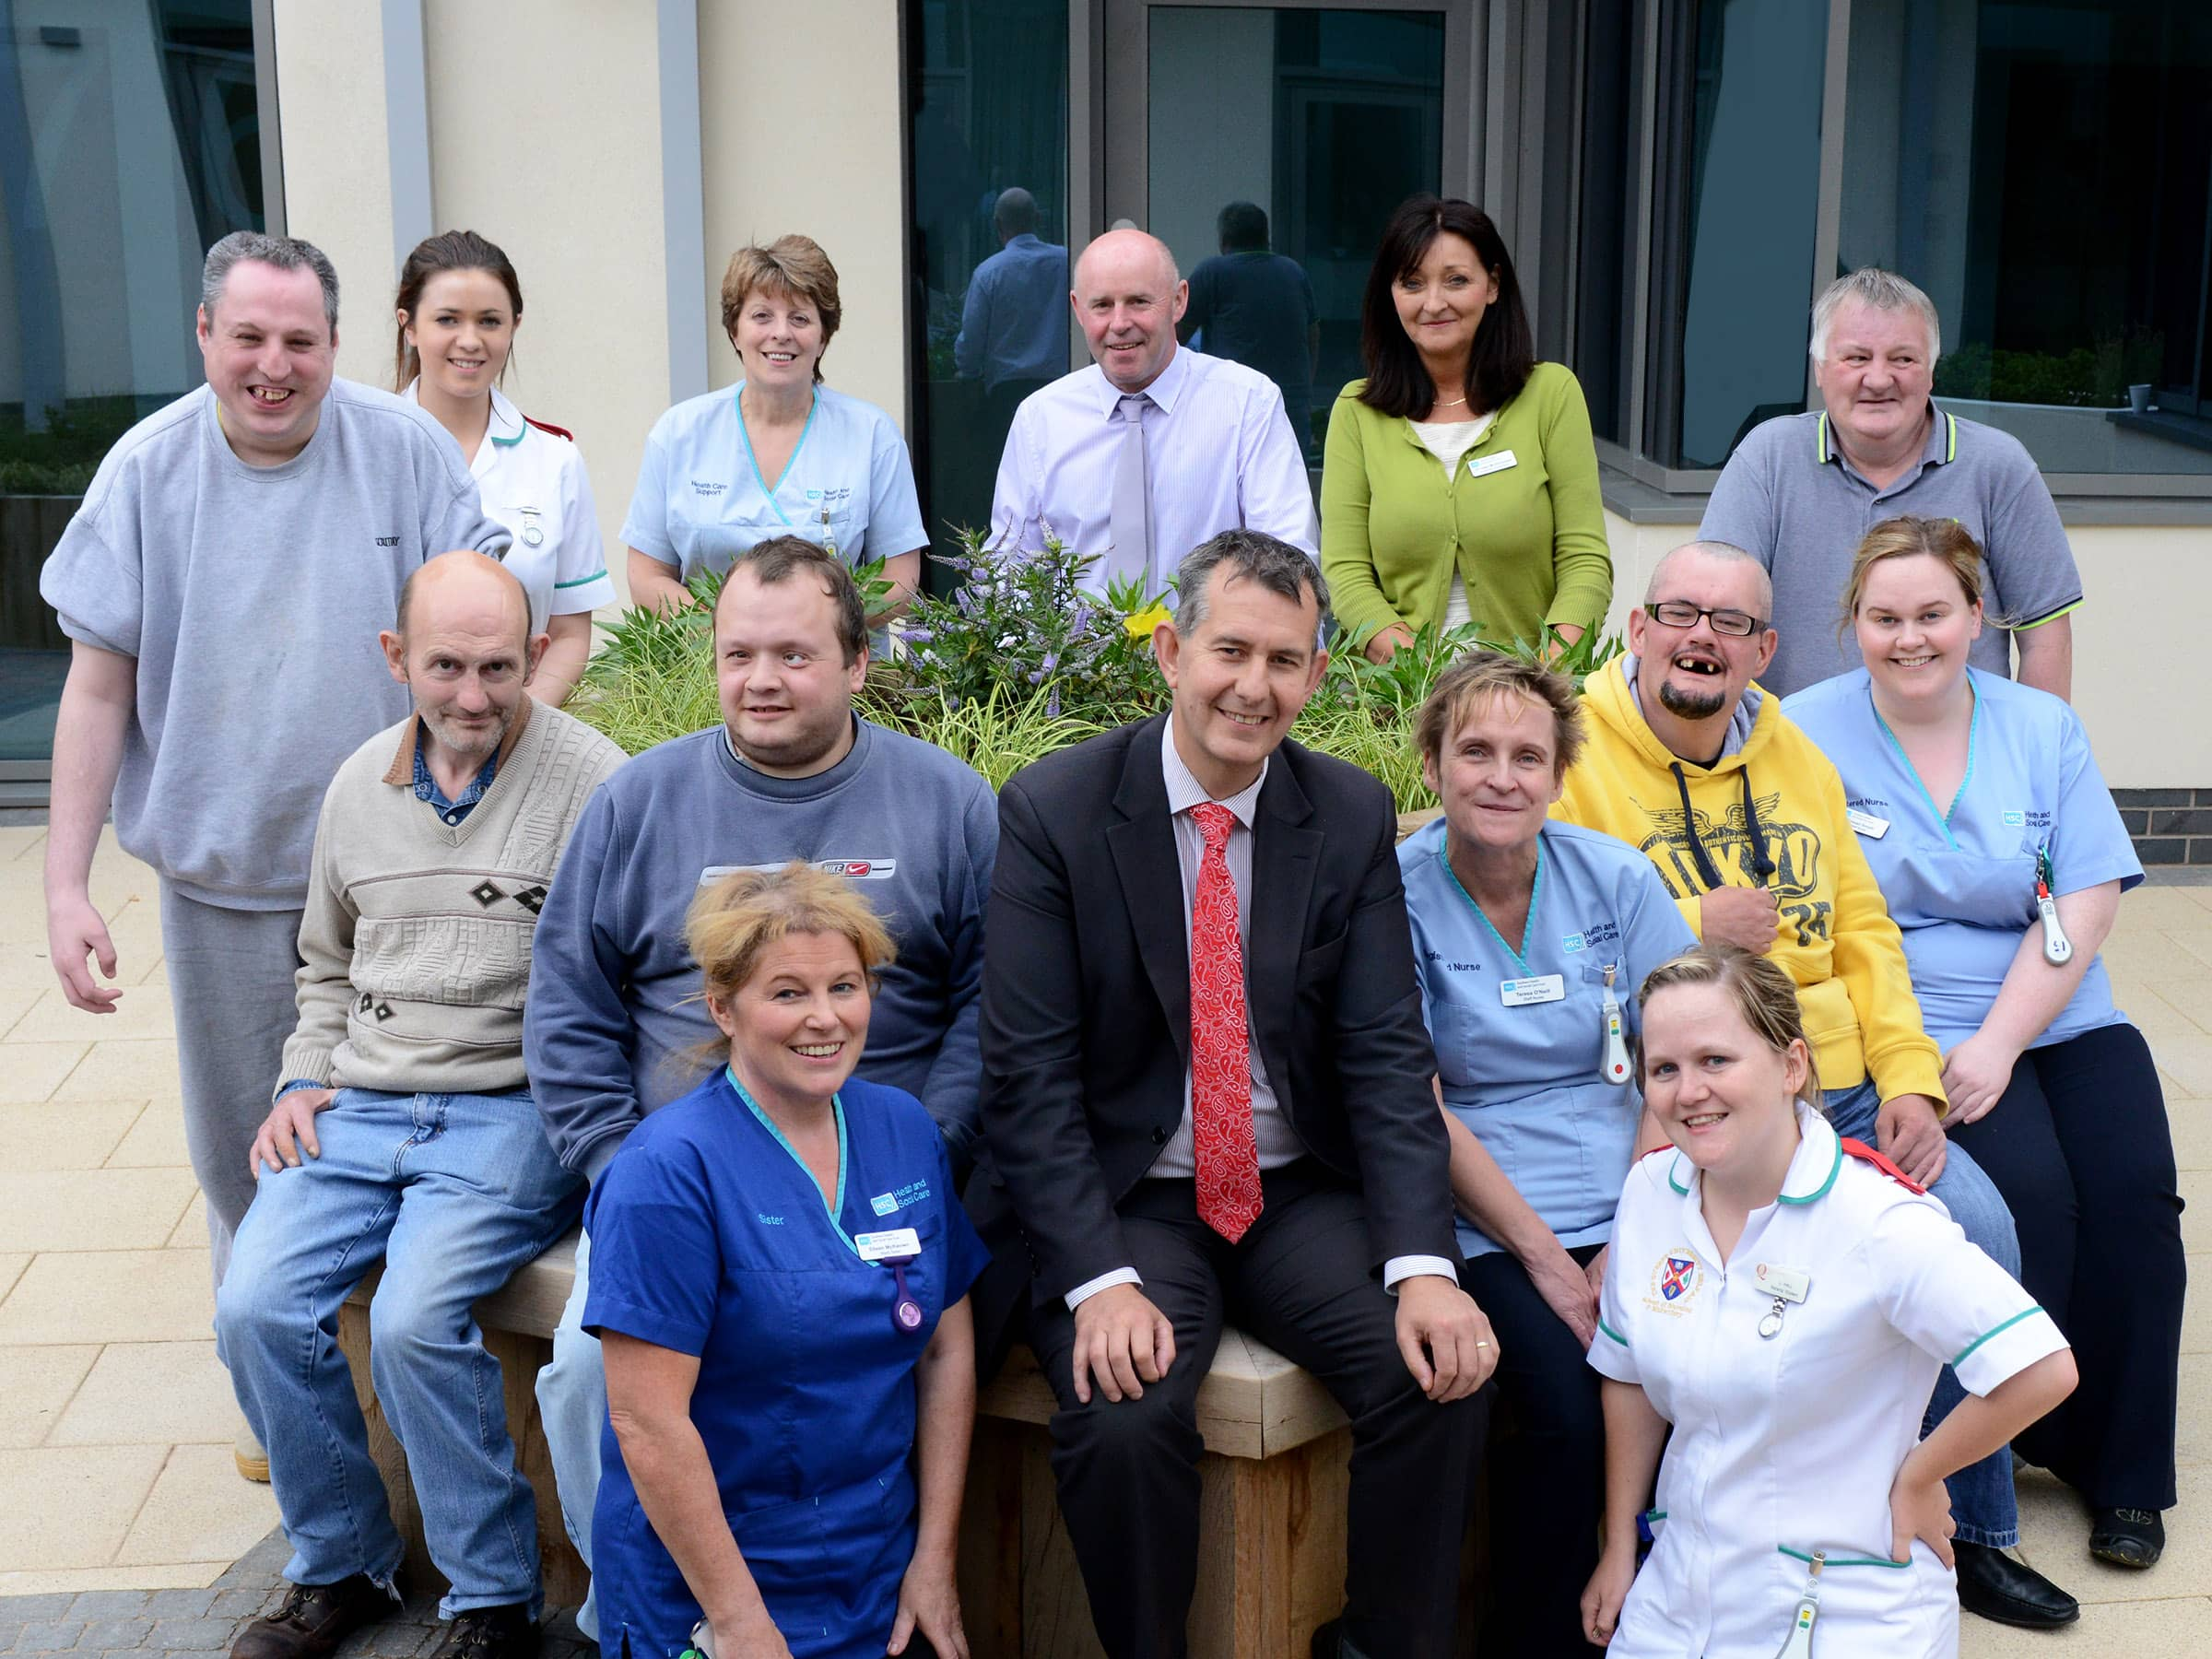 Health Minister Edwin Poots pictured with clients and staff during a visit to the new Dorsey Unit for the assessment of adults with a learning disability.